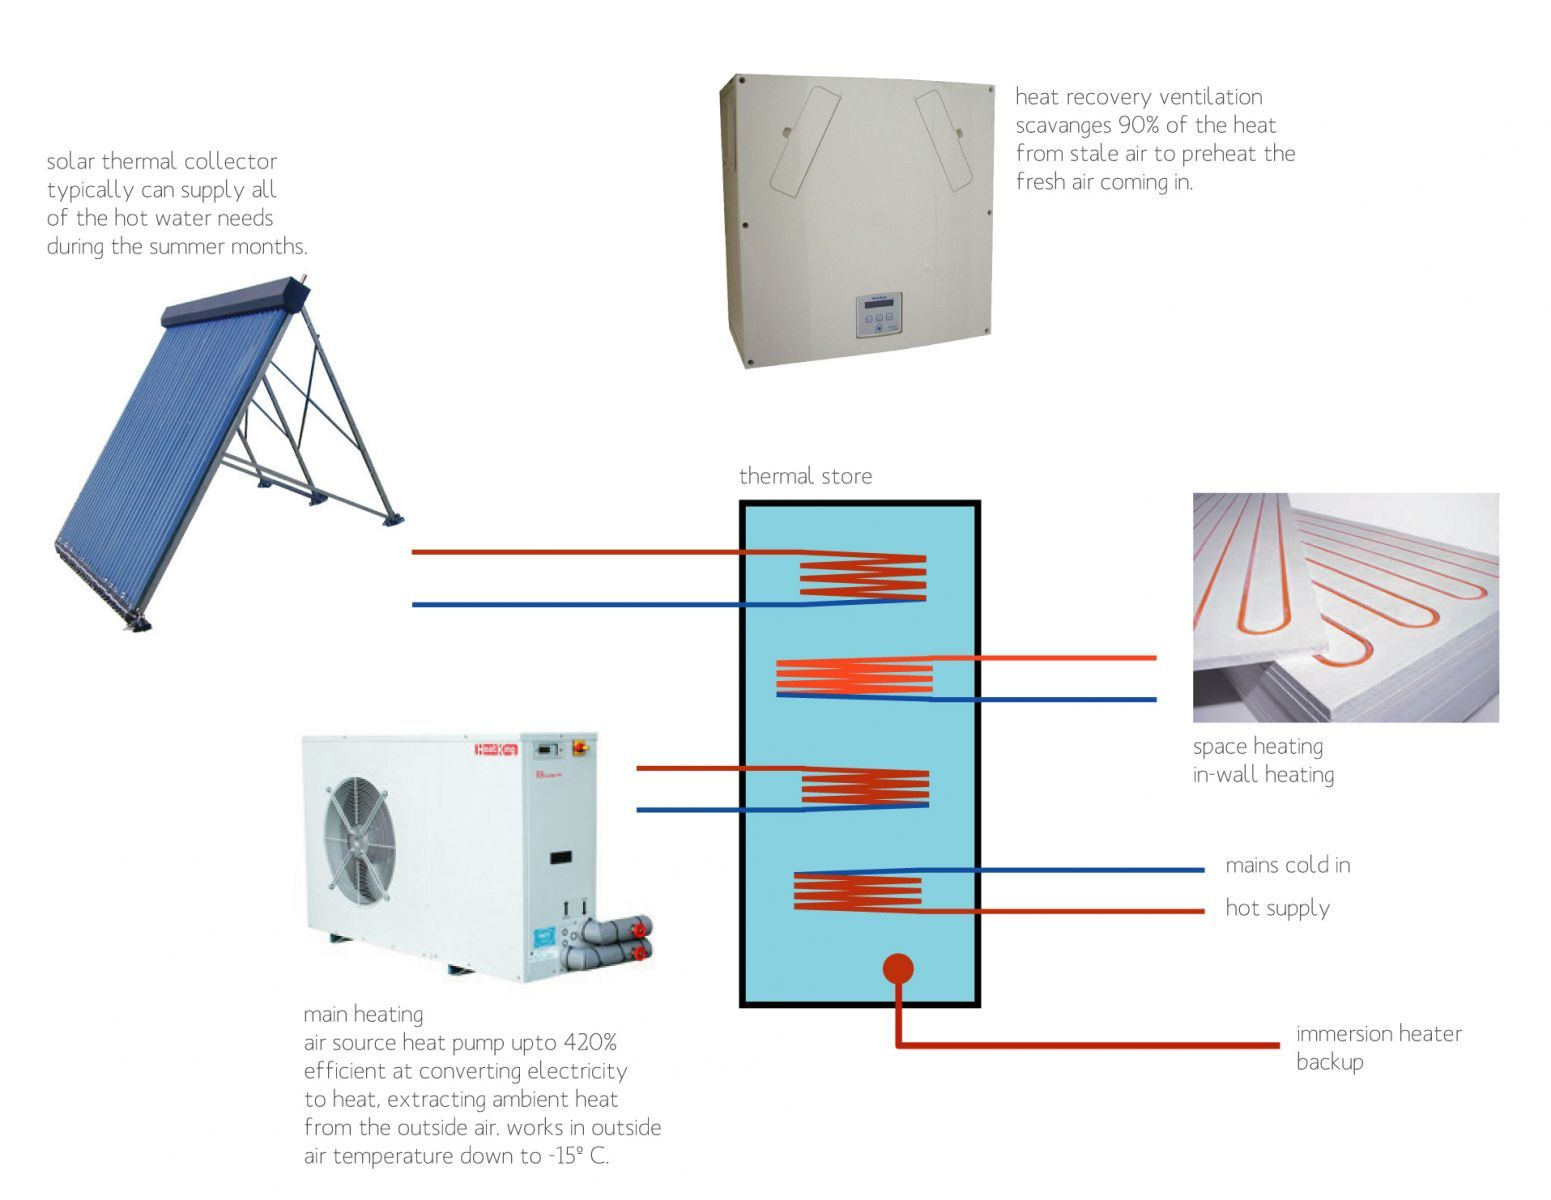 eco heating system diagram jpg 1551 1200  [ 1551 x 1200 Pixel ]